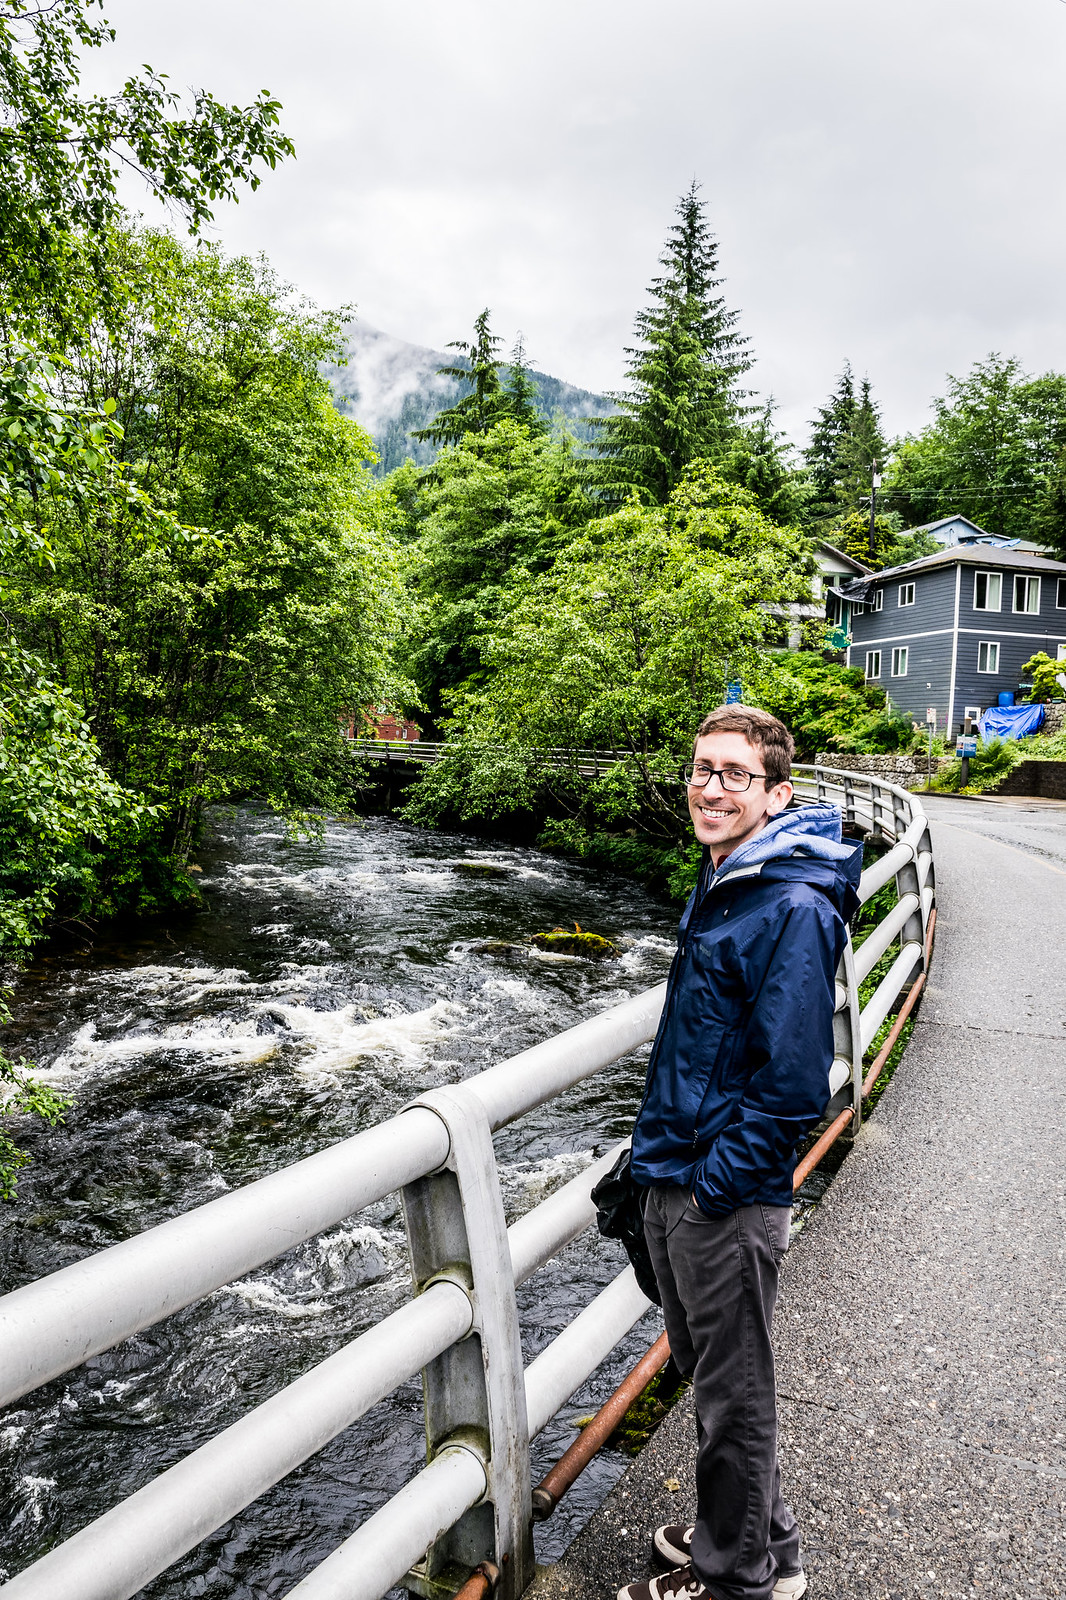 exploring the streets of Ketchikan